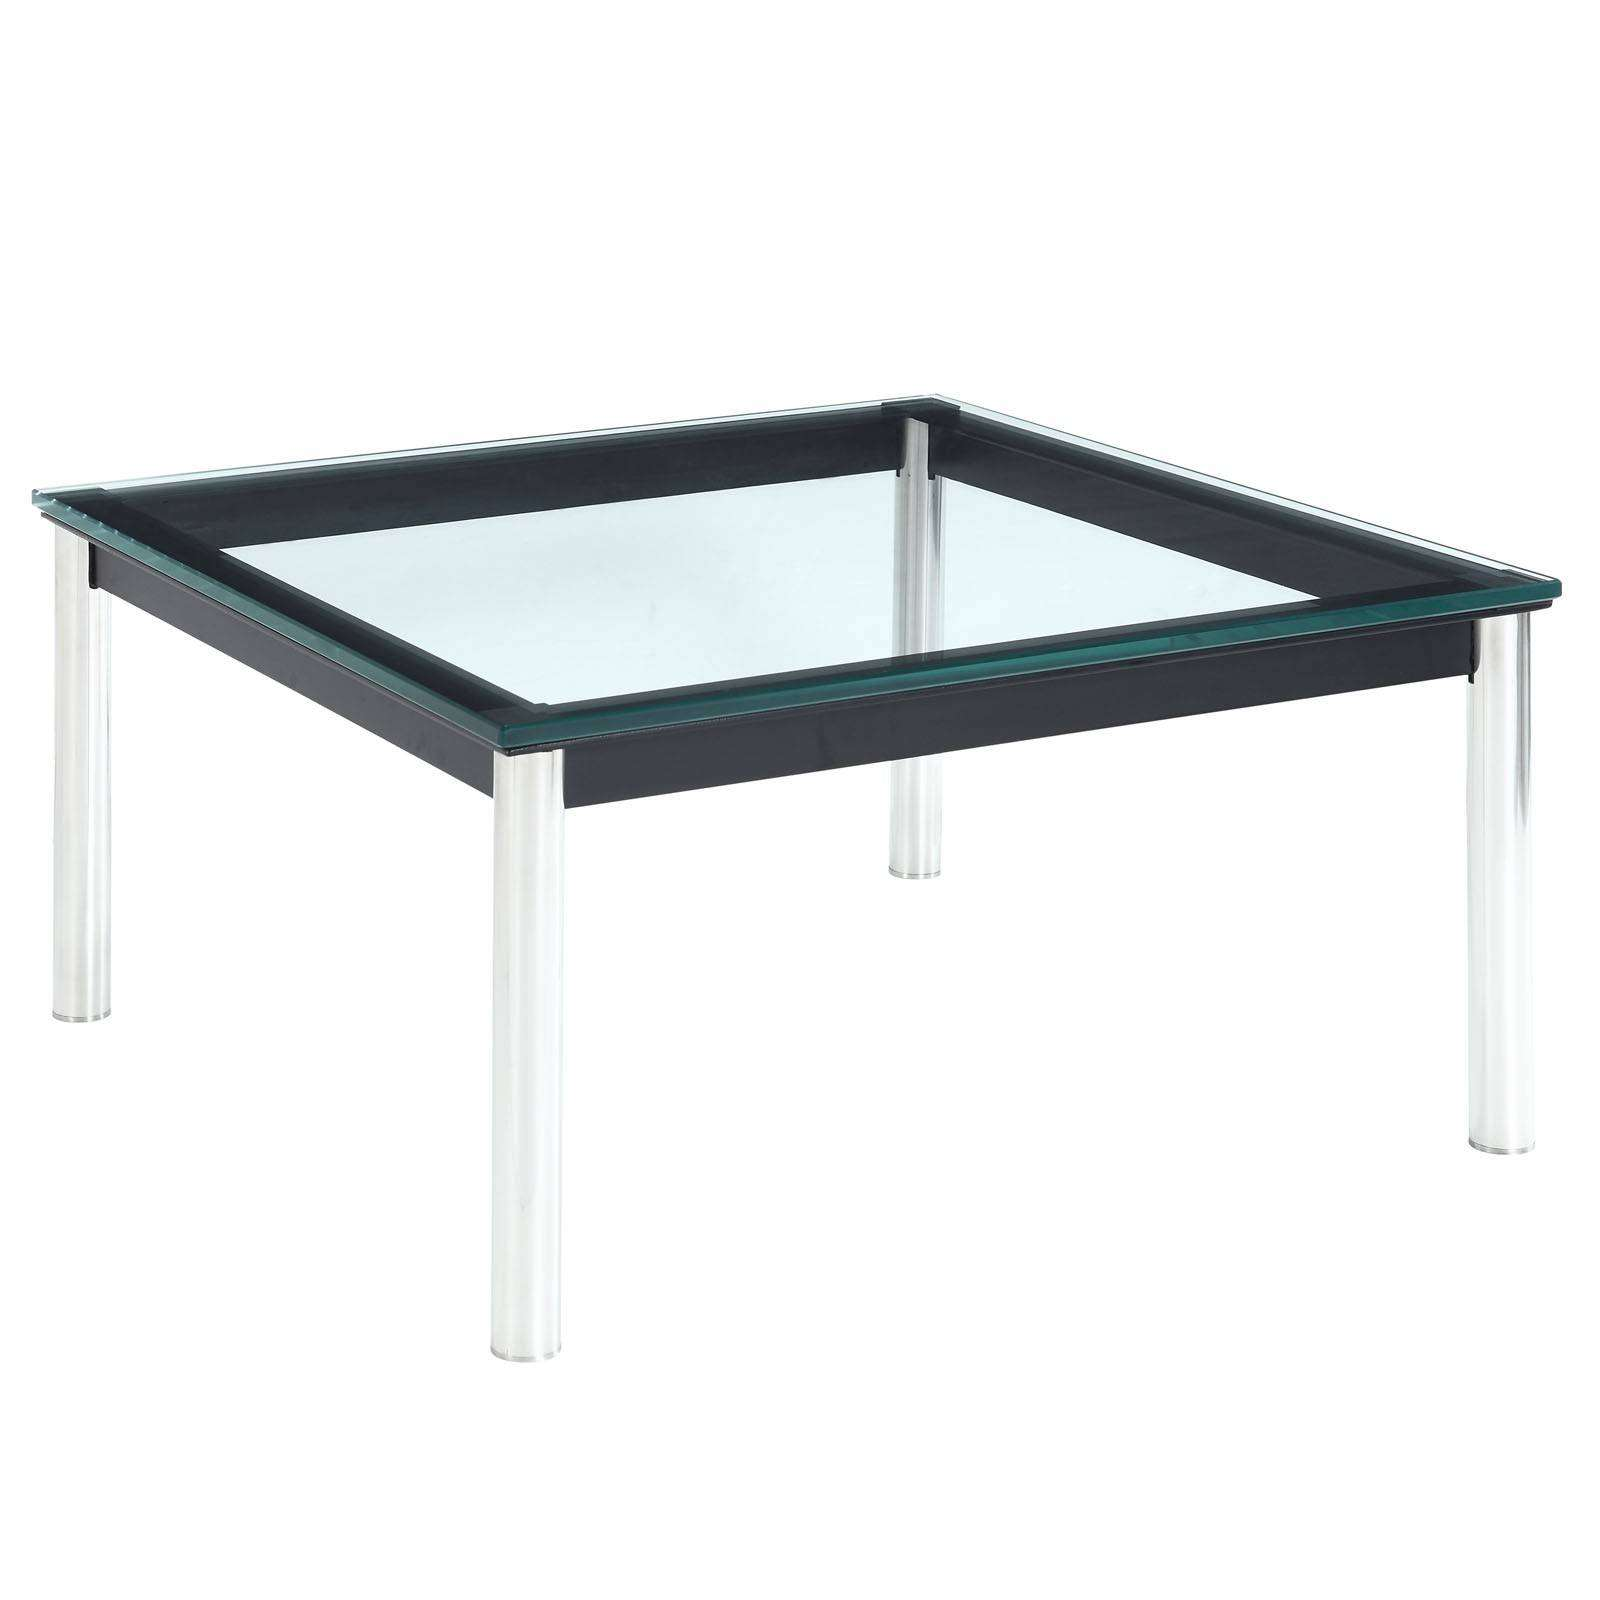 25 Best Collection Of Noguchi Coffee Table Dimensions: Le Corbusier Style LC10 End Table